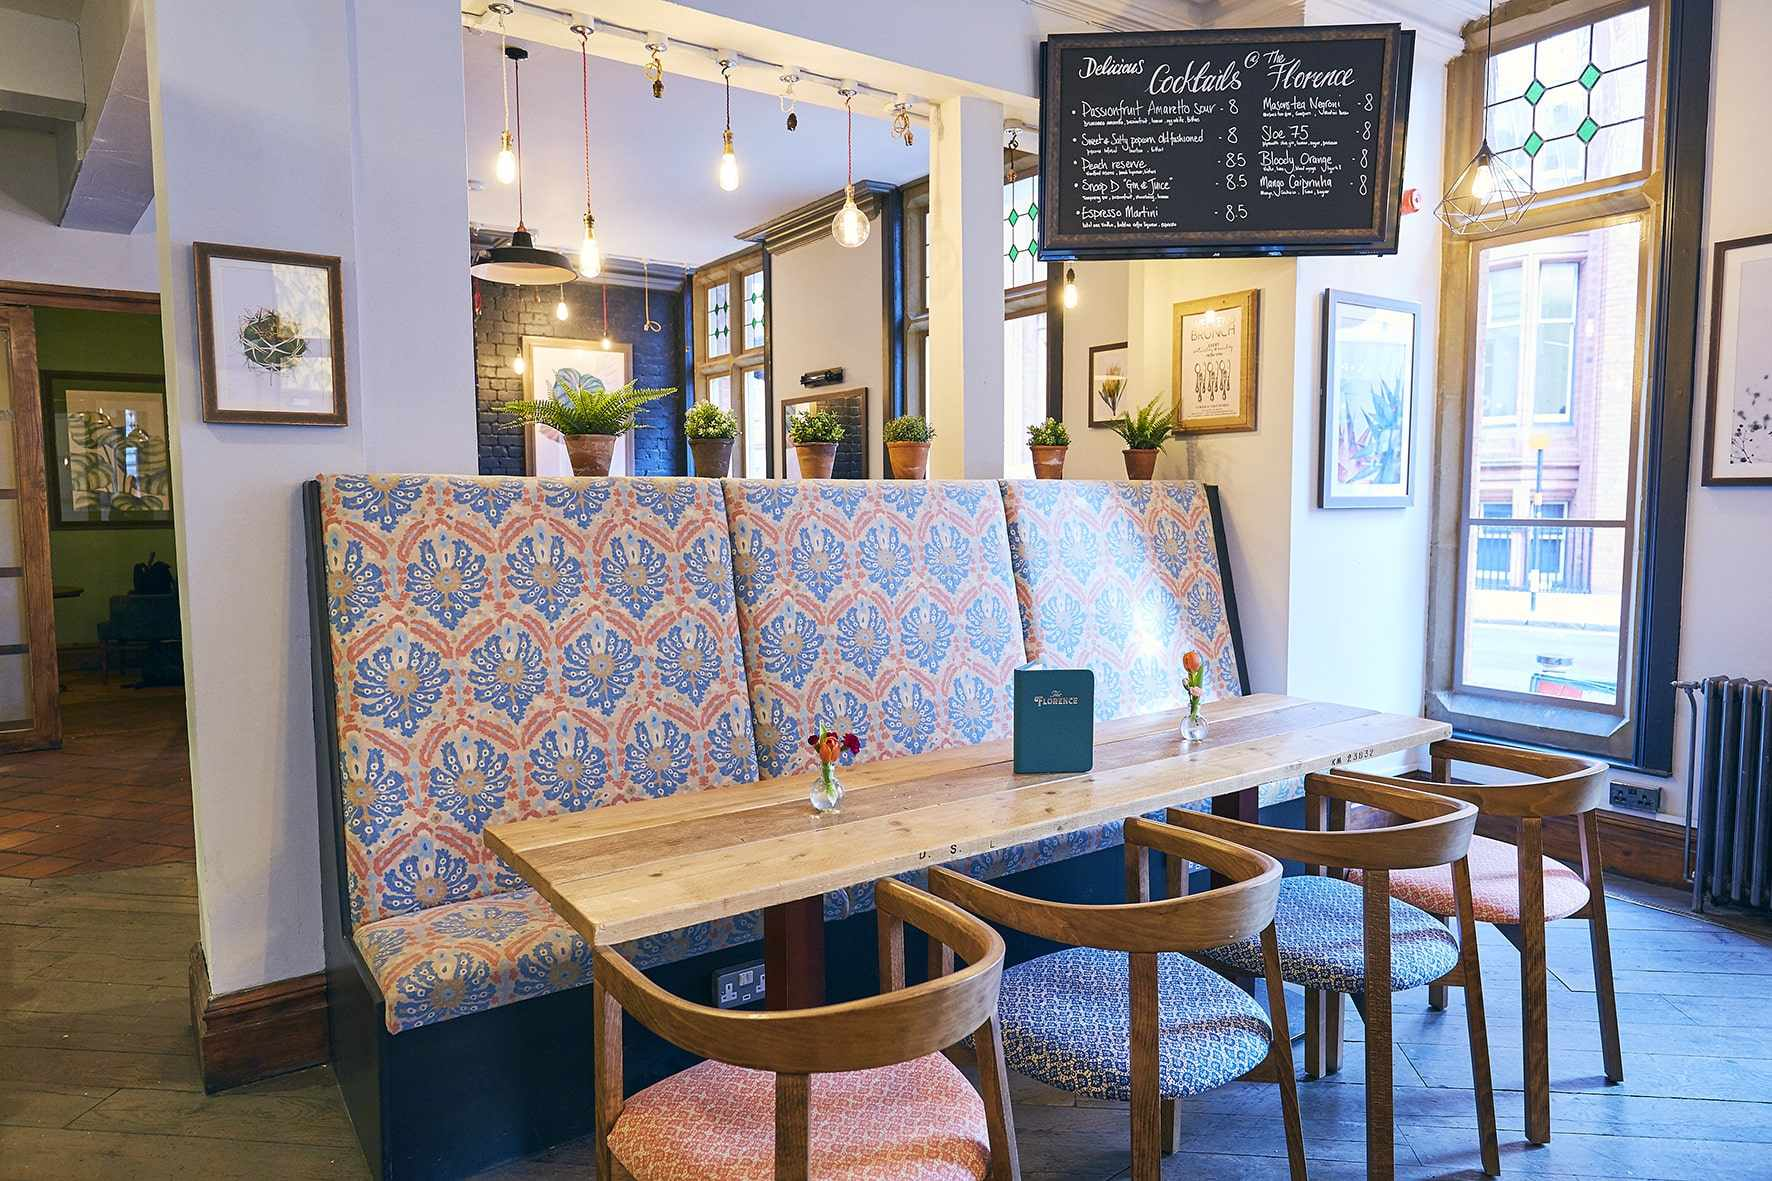 table-chairs-and-bench-in-restaurant-the-florence-bottomless-brunch-birmingham